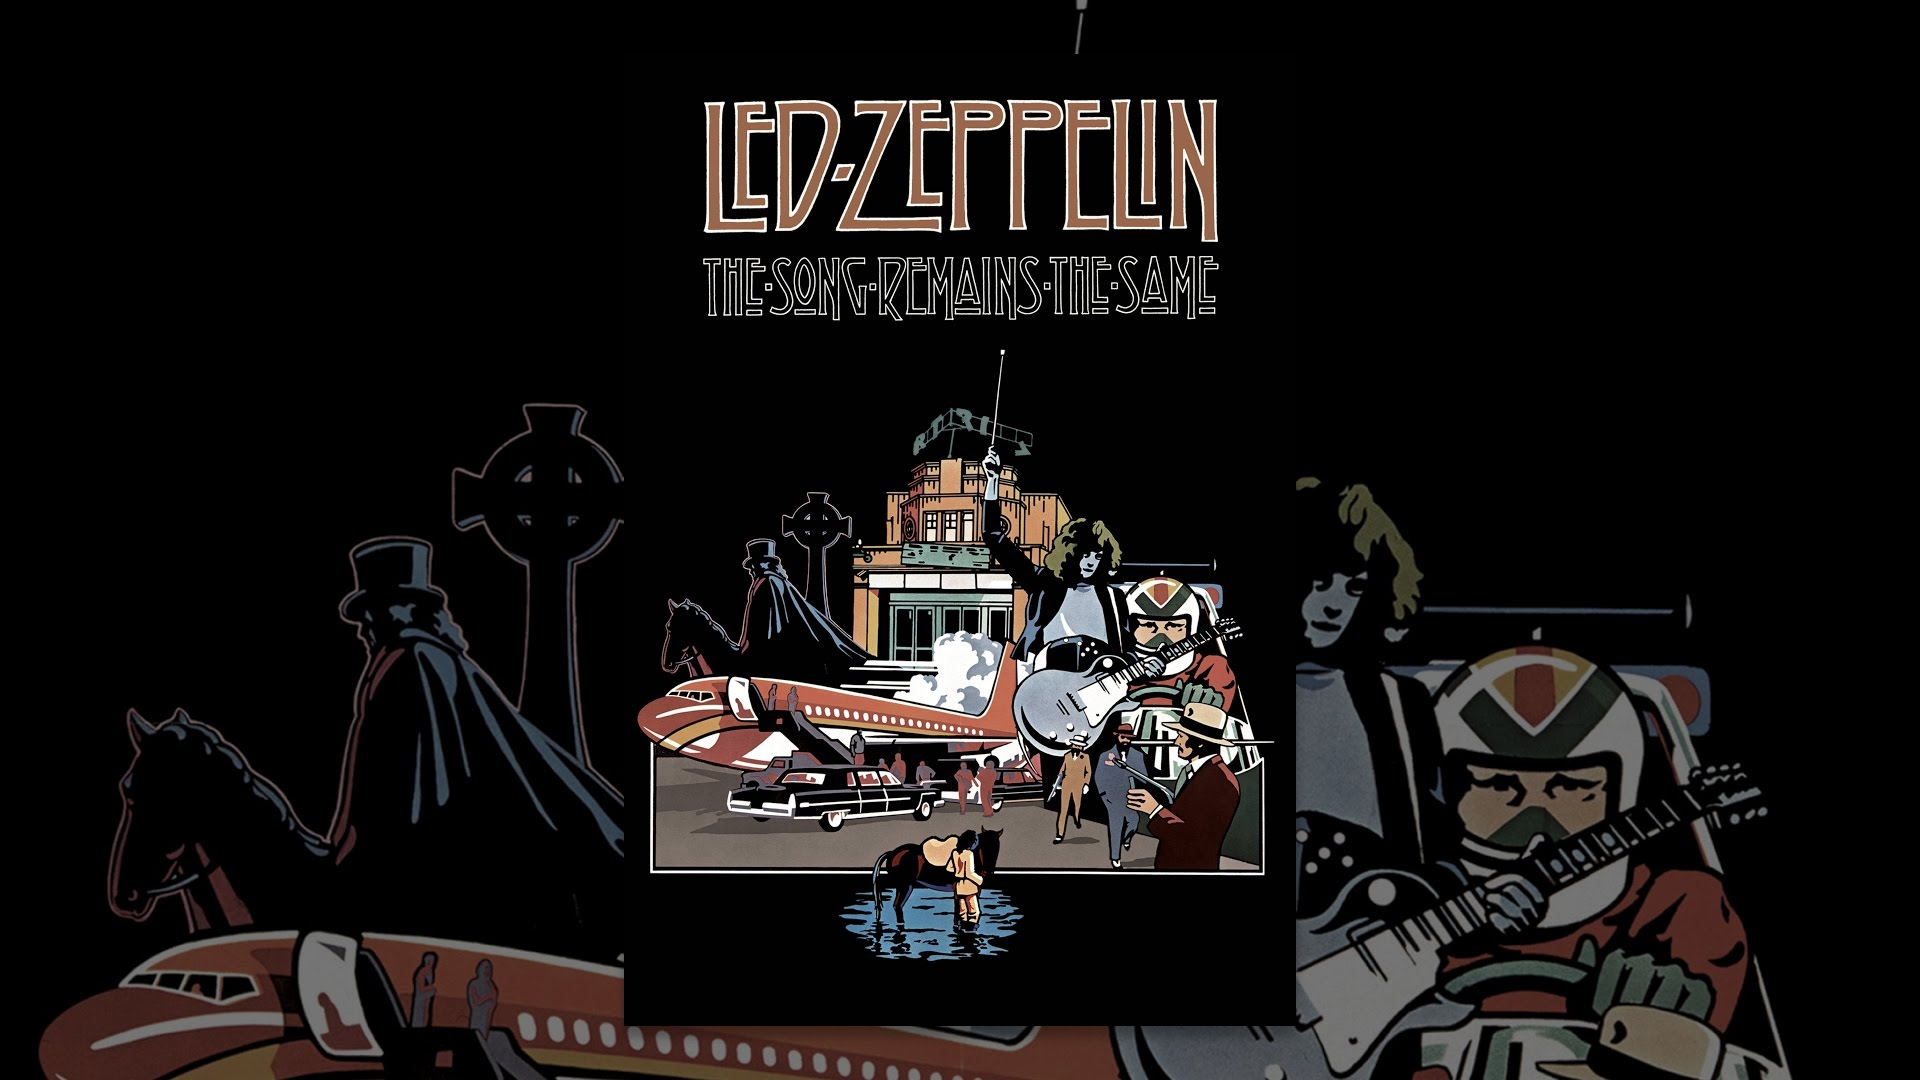 play led zeppelin the song remains the same